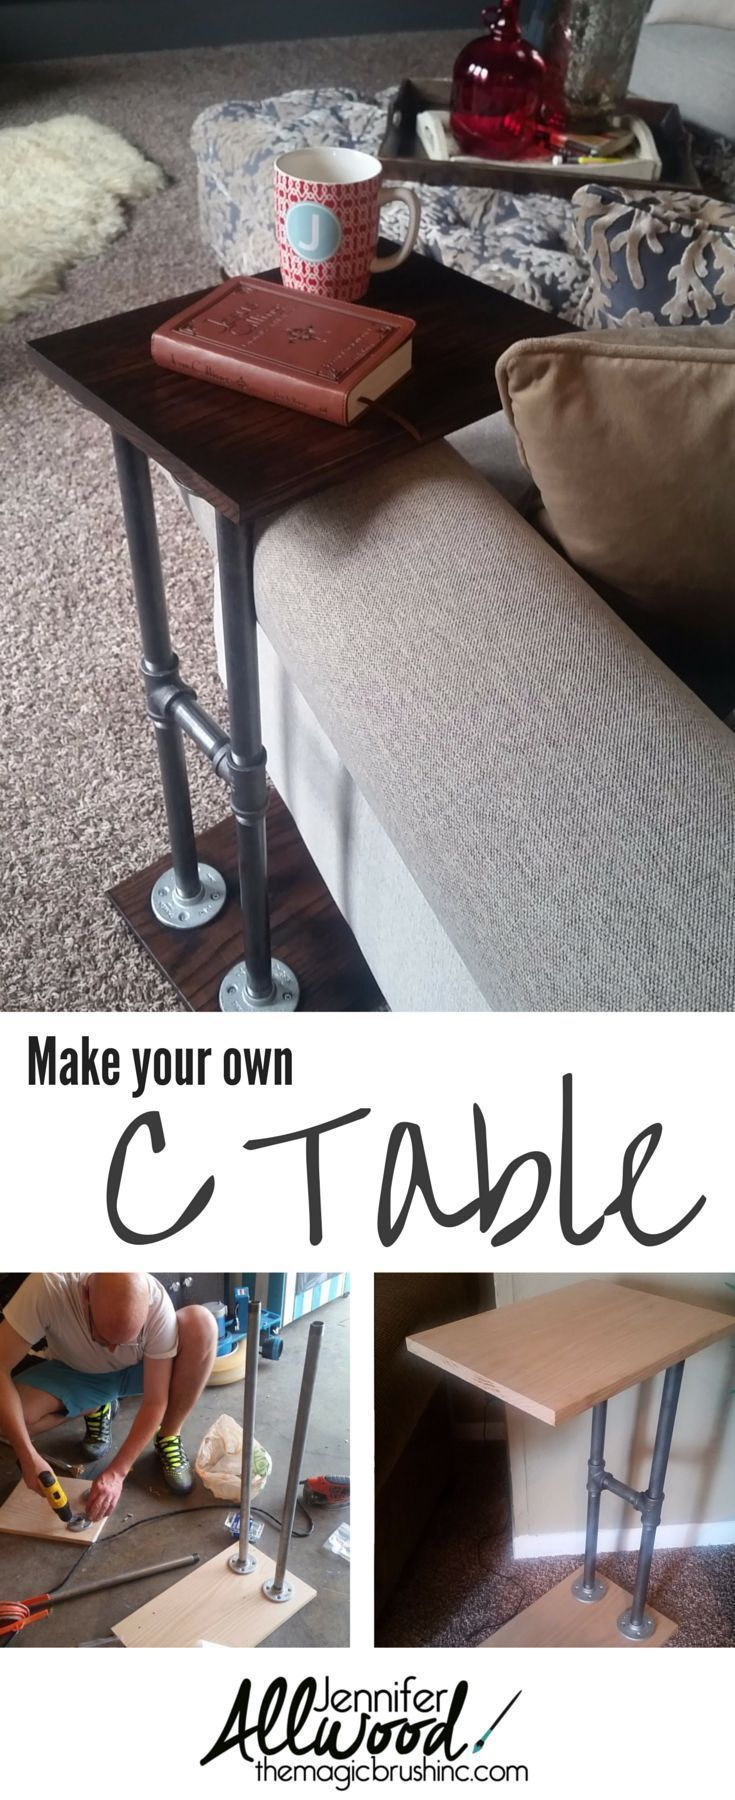 Ideas : You'll never have to reach for that coffee mug again!  Make your own C table for armchairs! We used industrial pipes, flanges and stained oak wood pieces. Get instructions from Jennifer Allwood at TheMagicBrushinc.com #diy #diyhomedecor #armchair #homeprojects #howto #homedecor